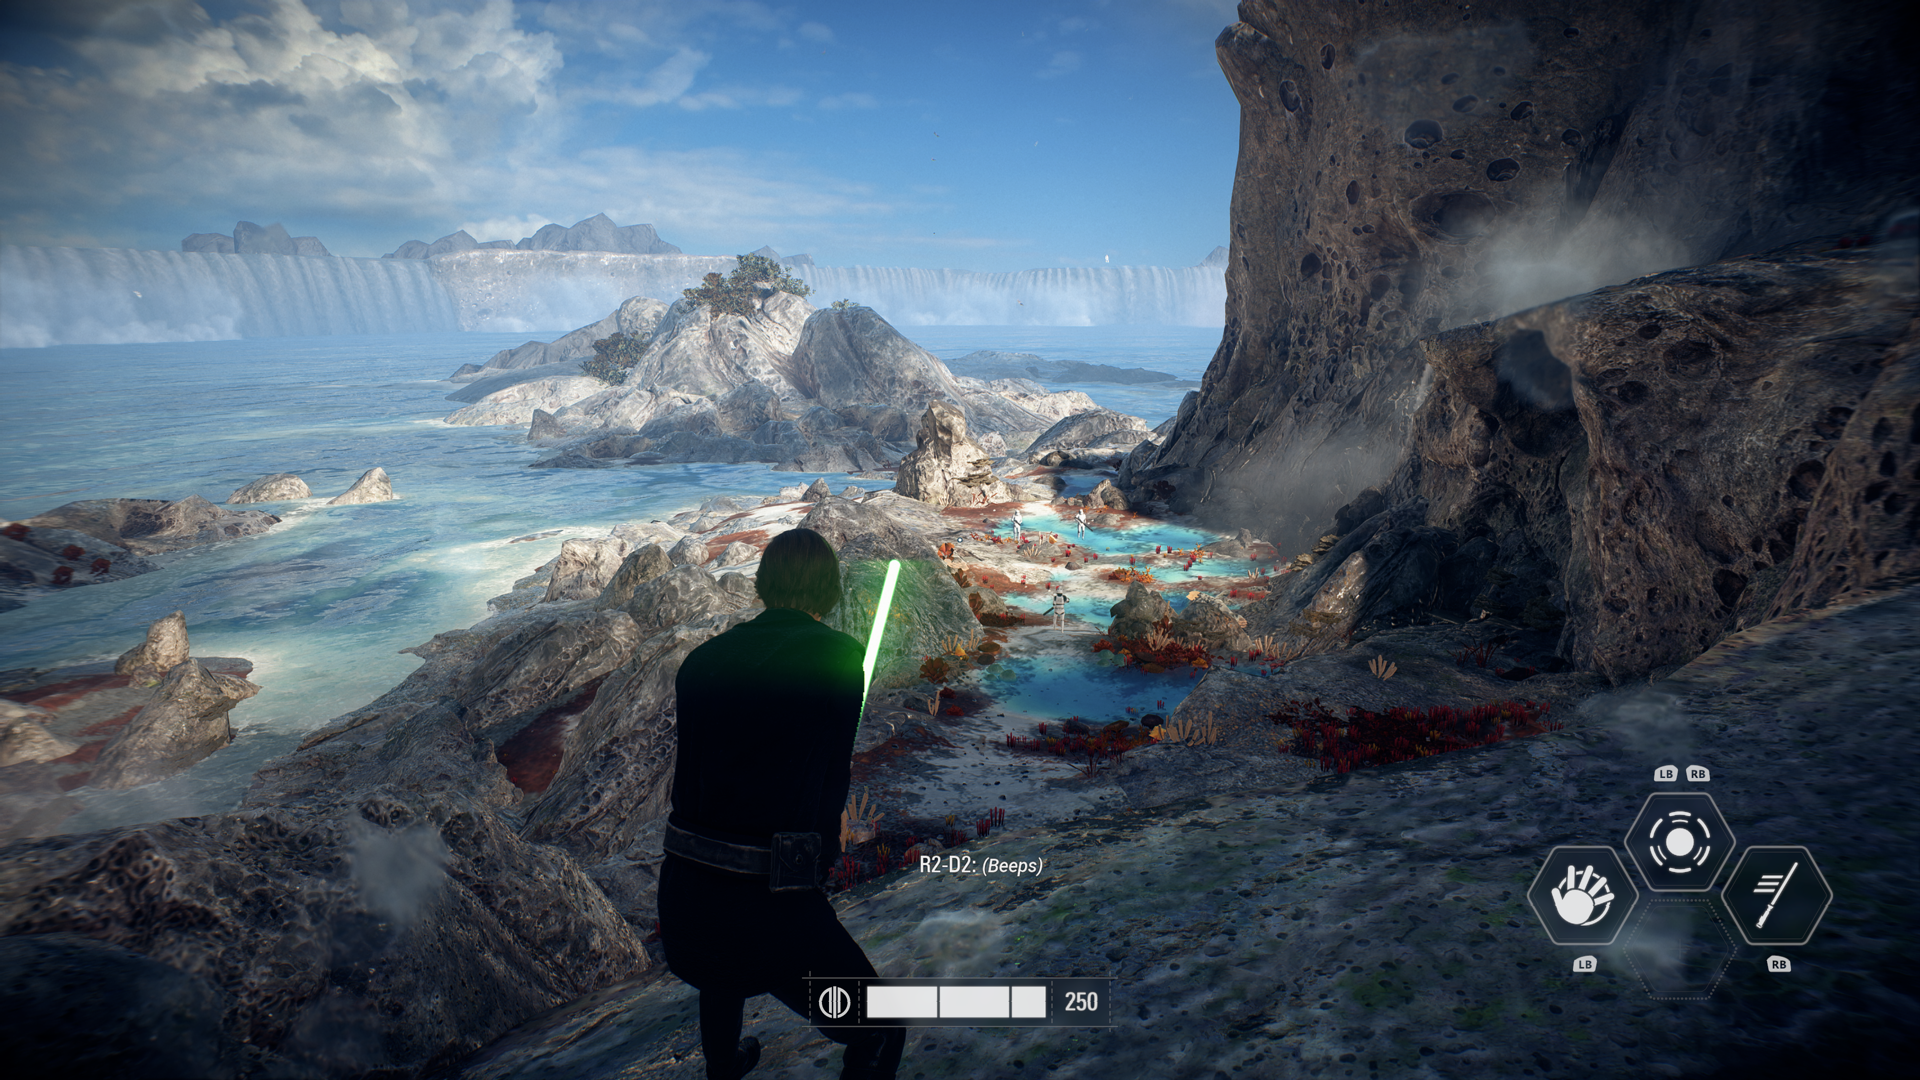 star wars battlefront you have your moments